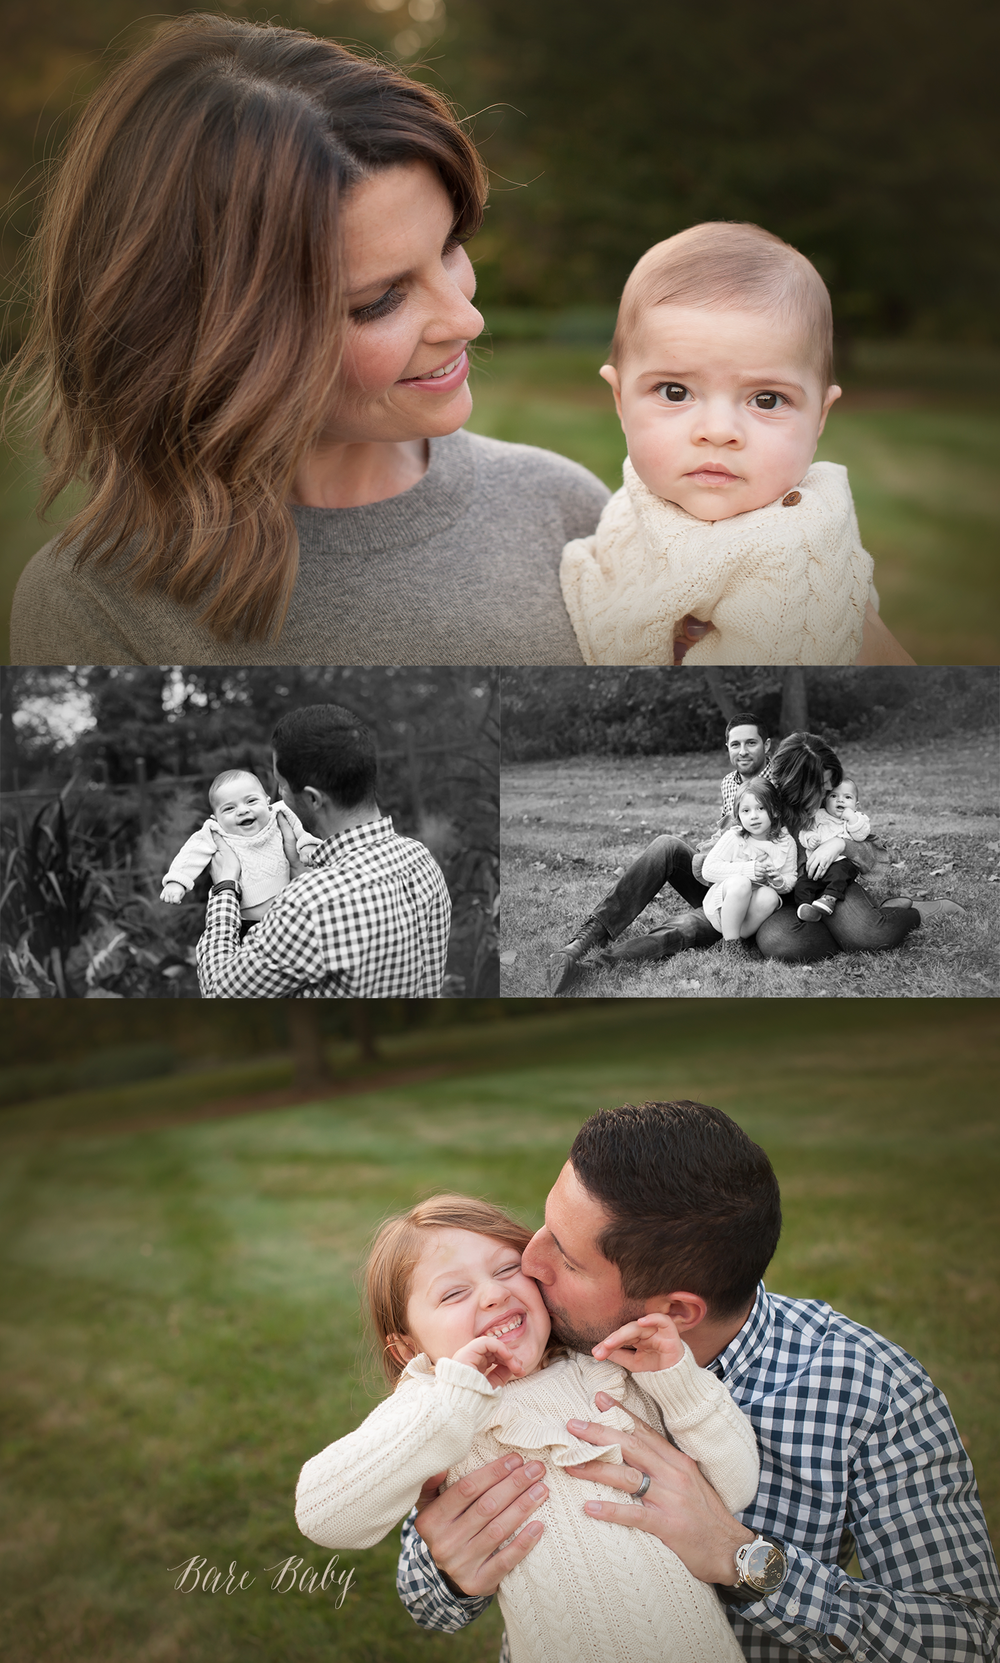 family-photographers-columbus-bare-baby.png